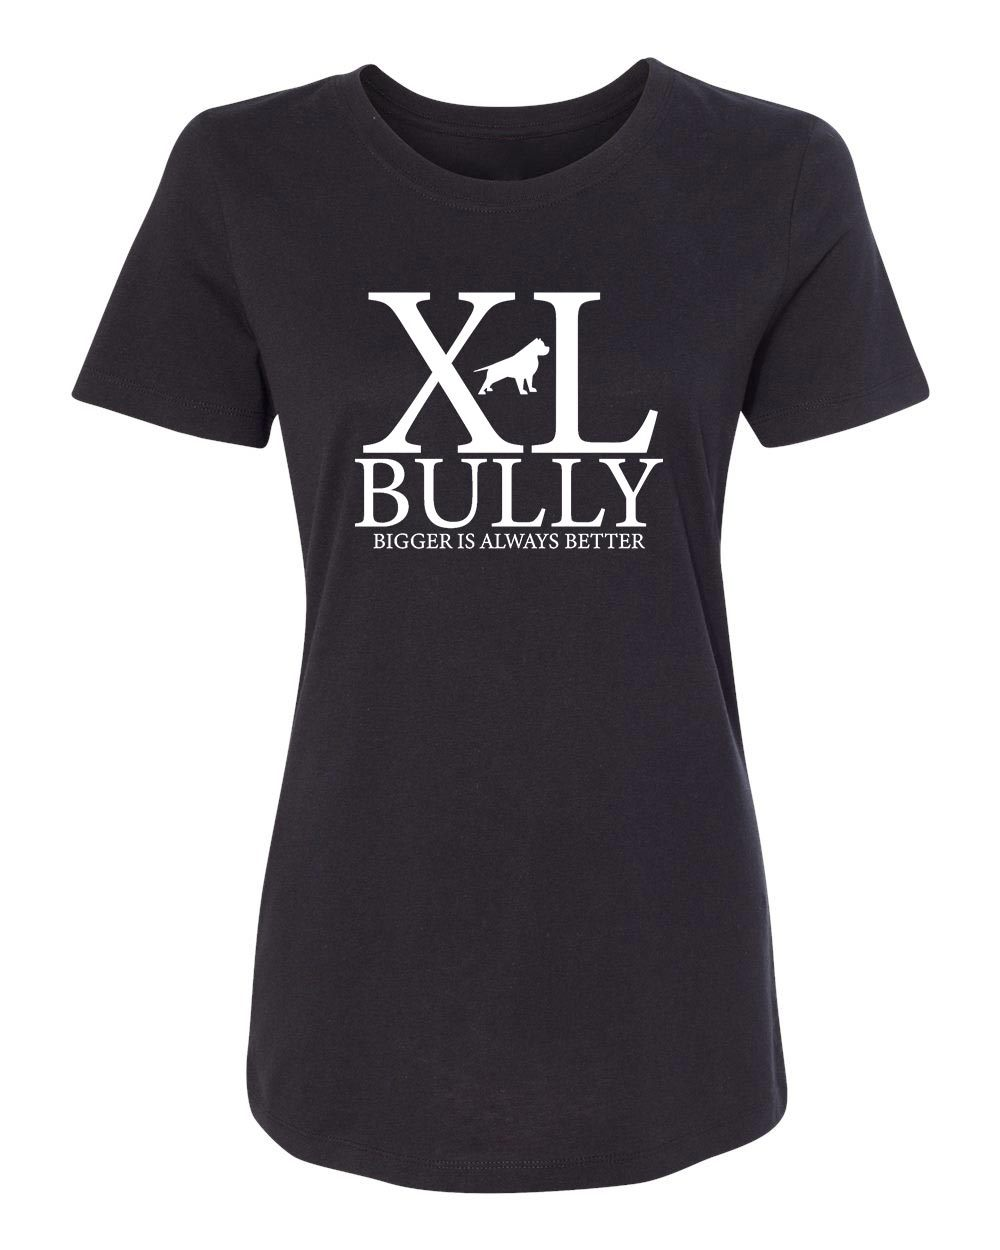 XL Bully Womens Crew Neck Tee